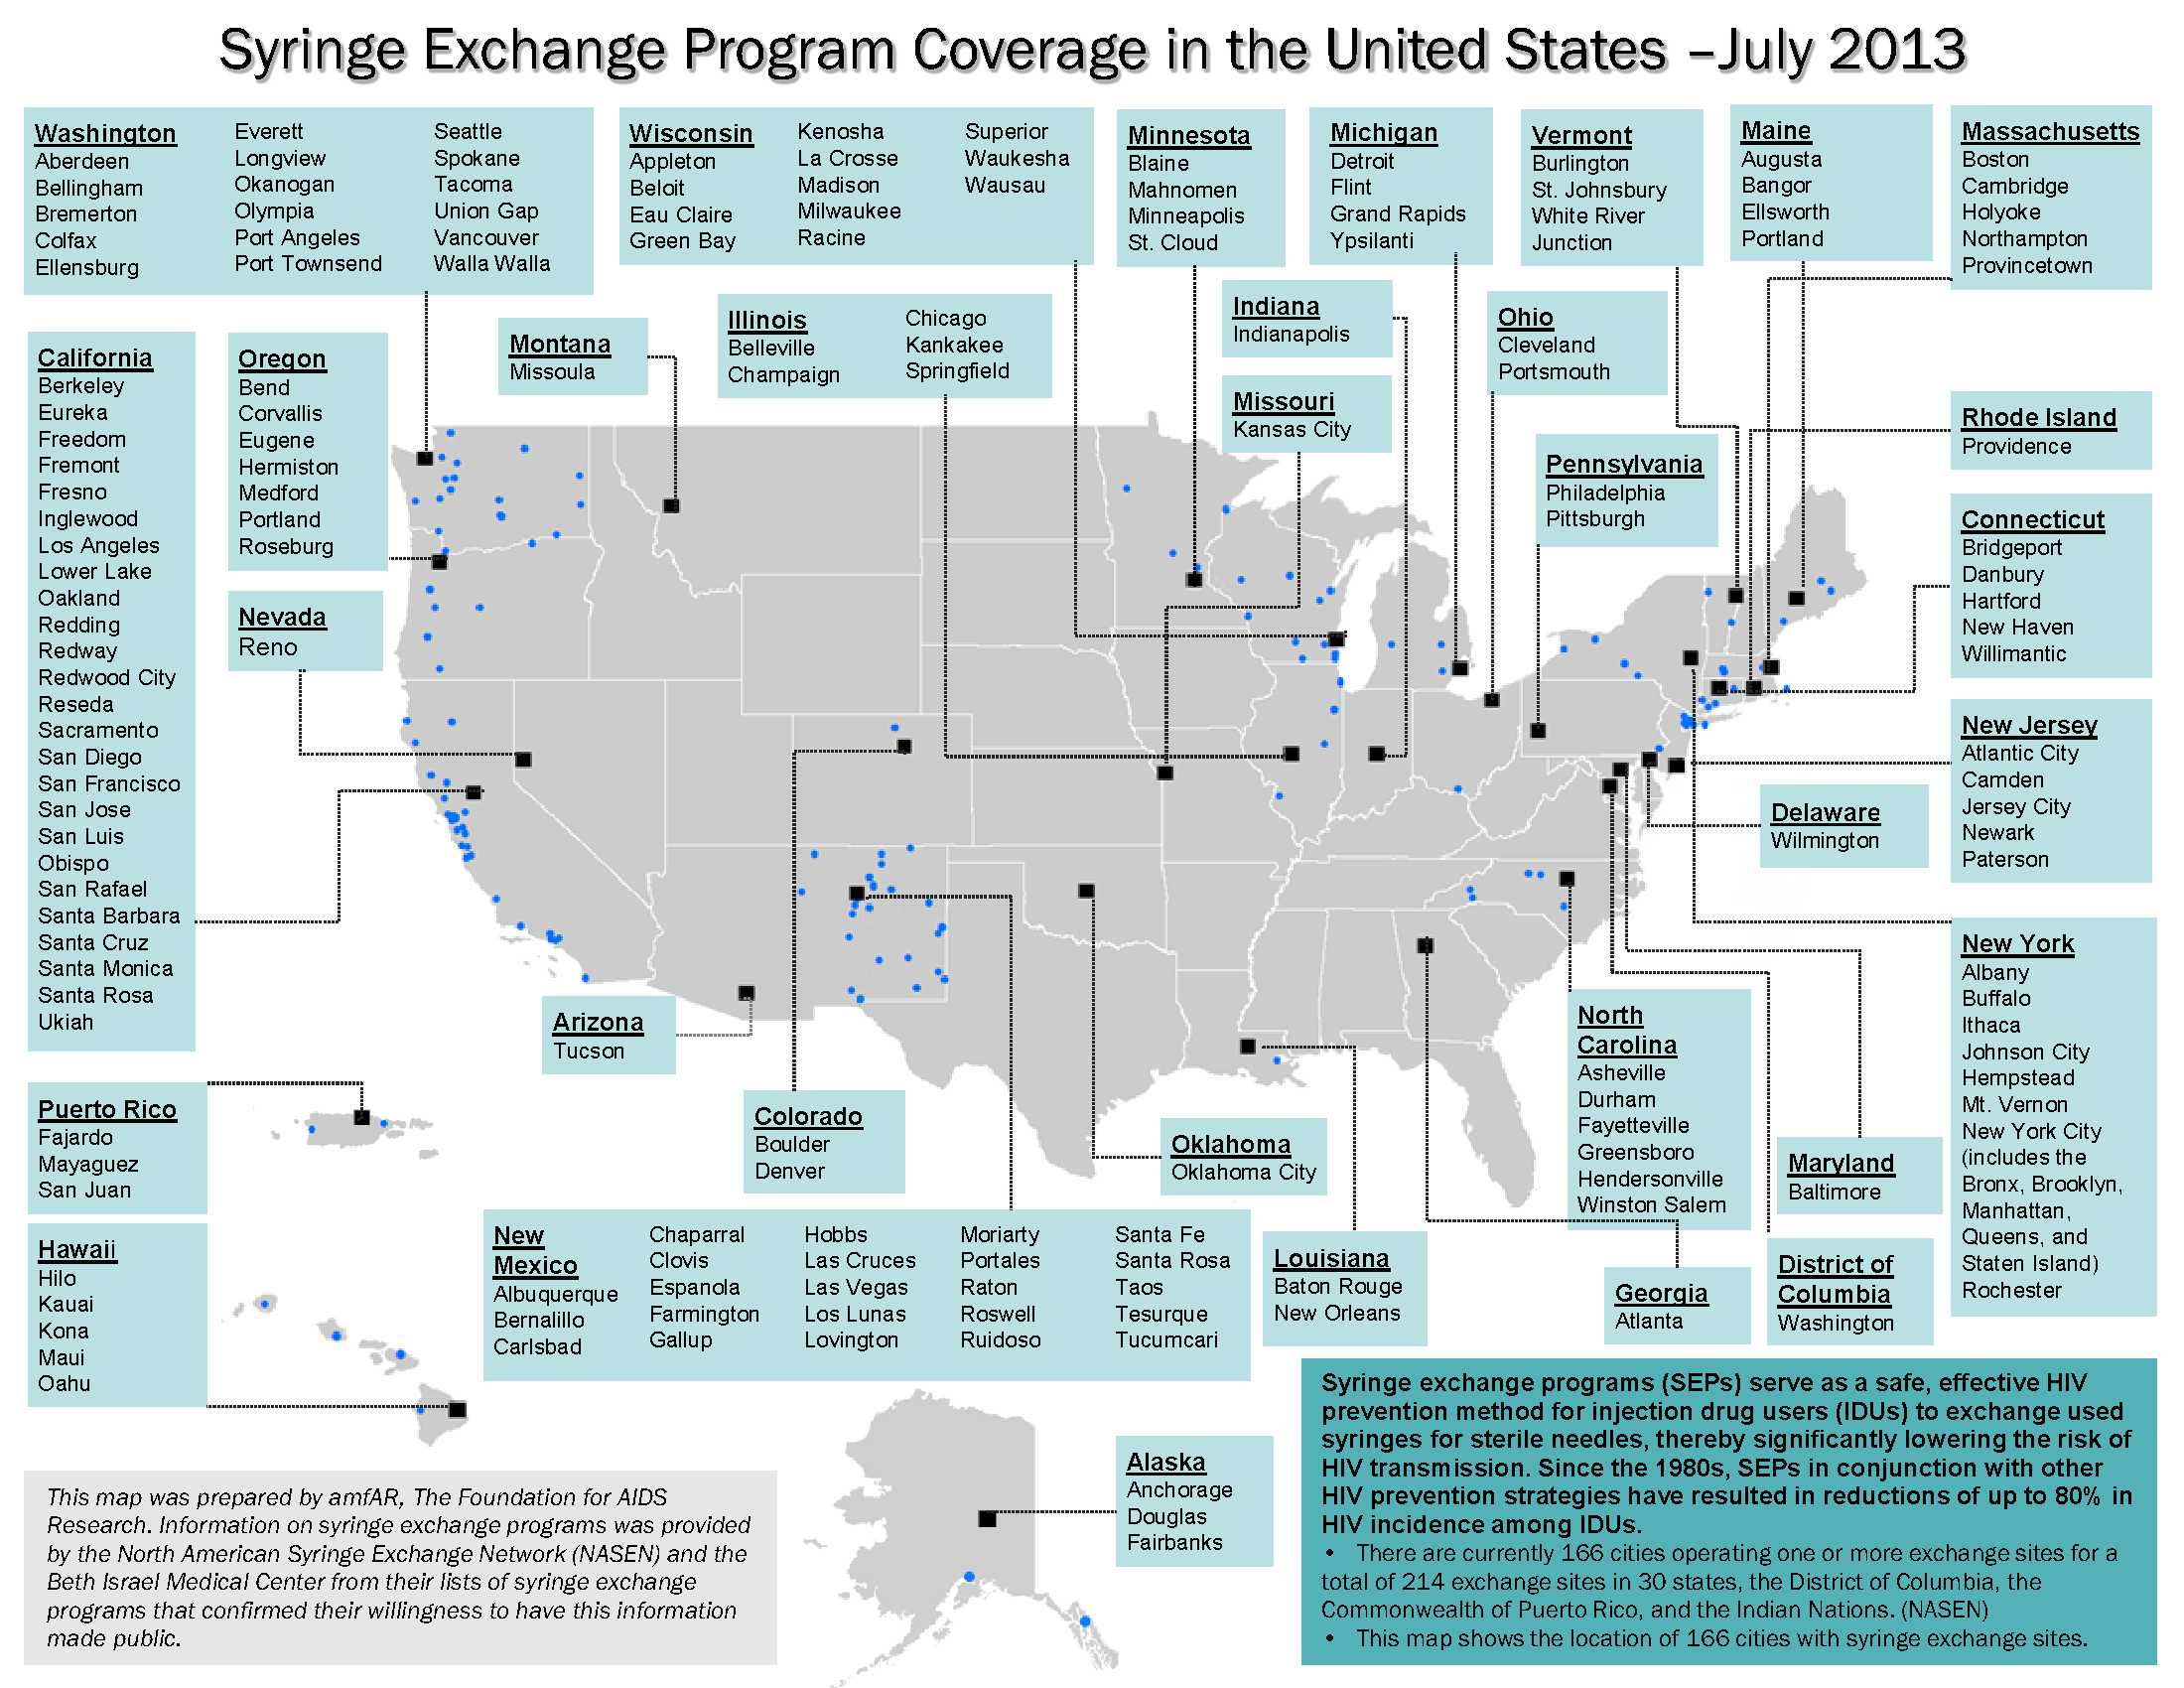 Syringe Exchange Programs by State